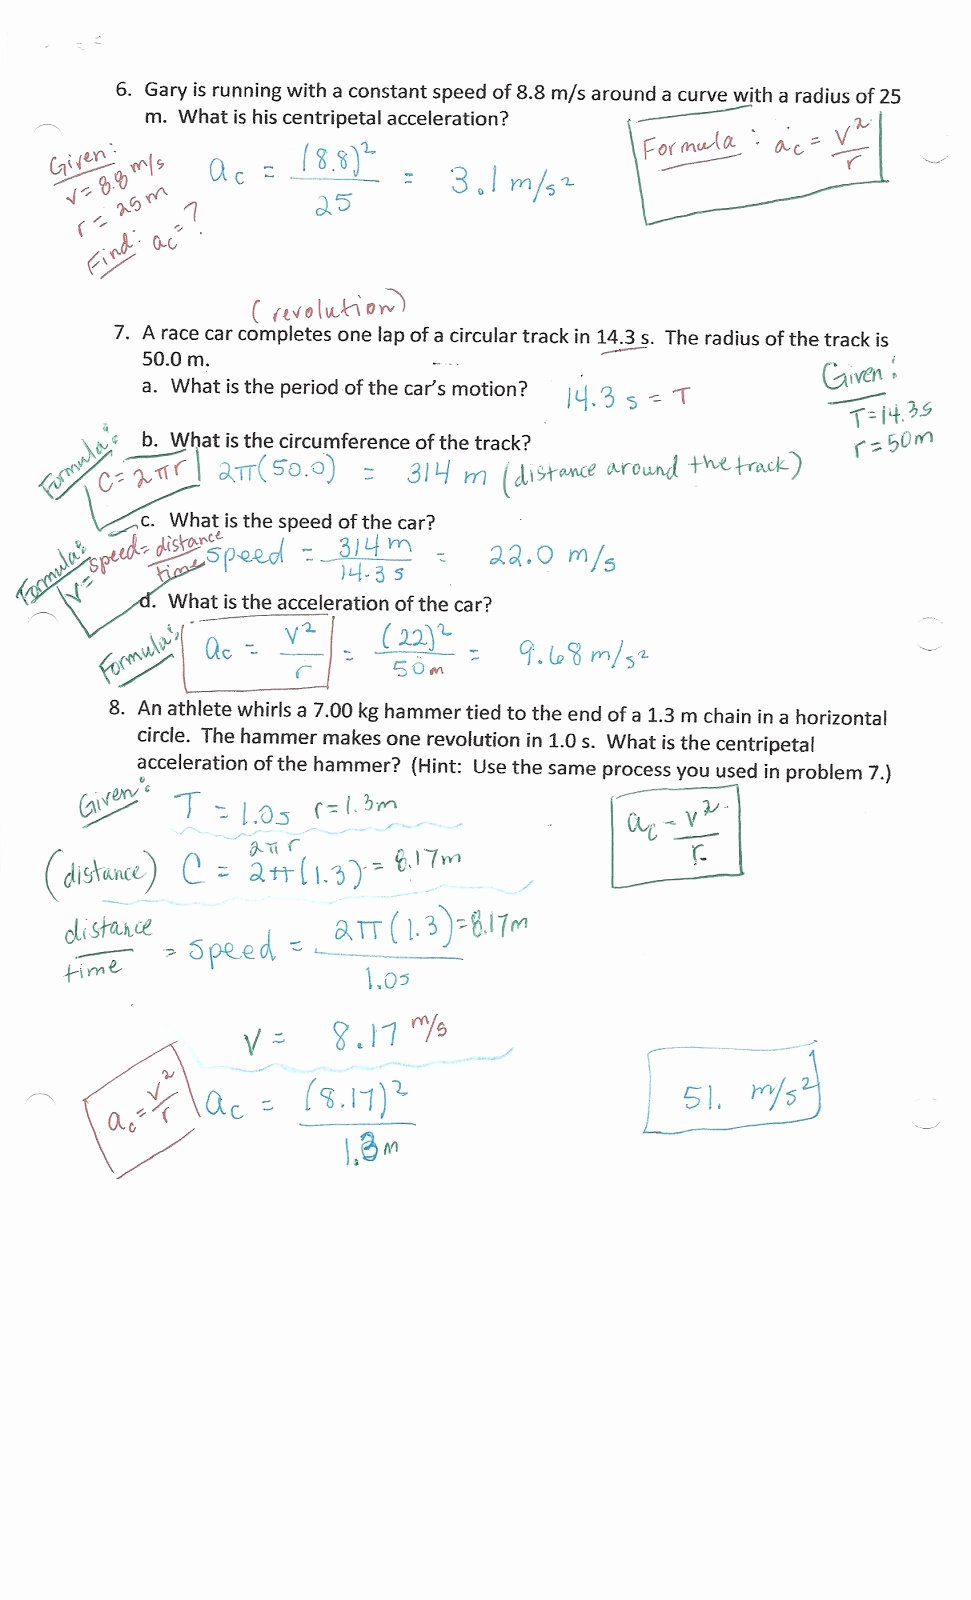 Universal Gravitation Worksheet Answers Beautiful Physics with Coach T Centripetal Acceleration Universal